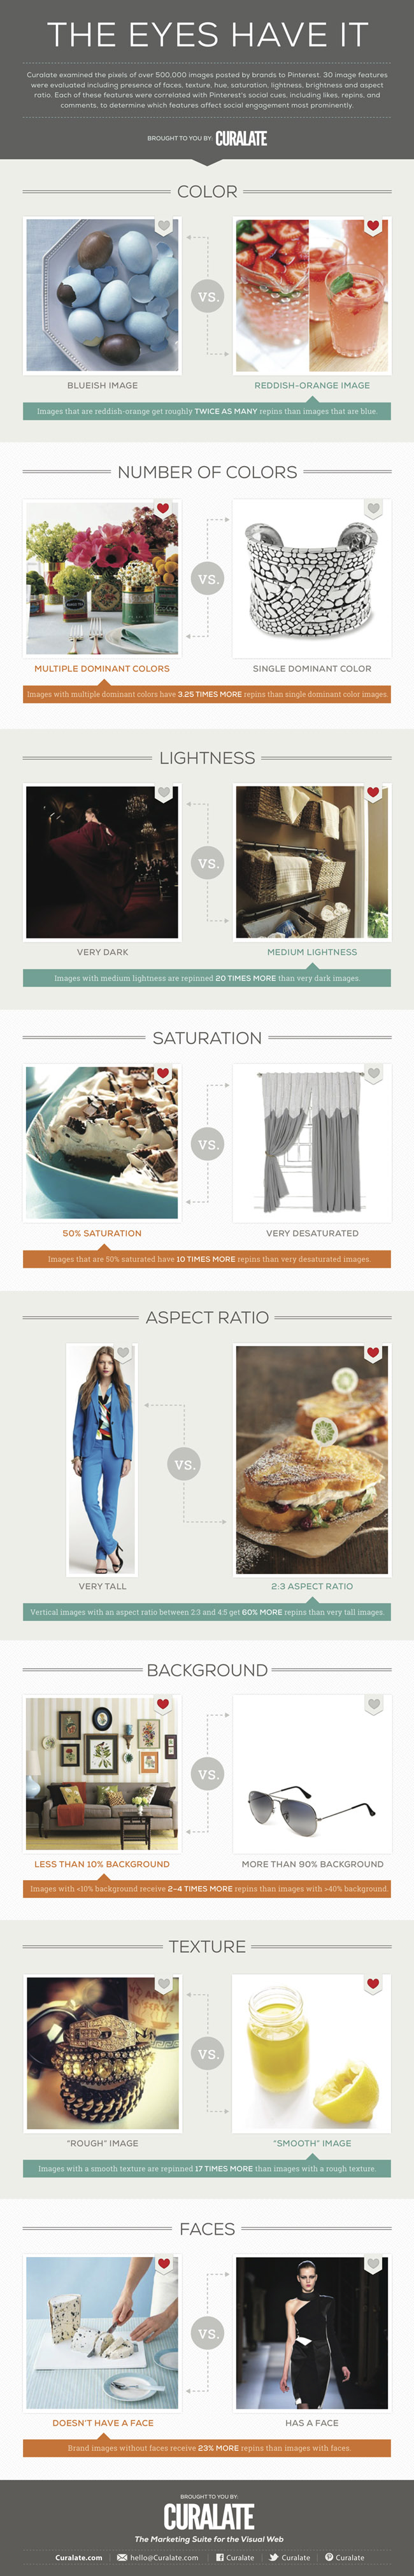 Curalate Infographic pinterest analisys